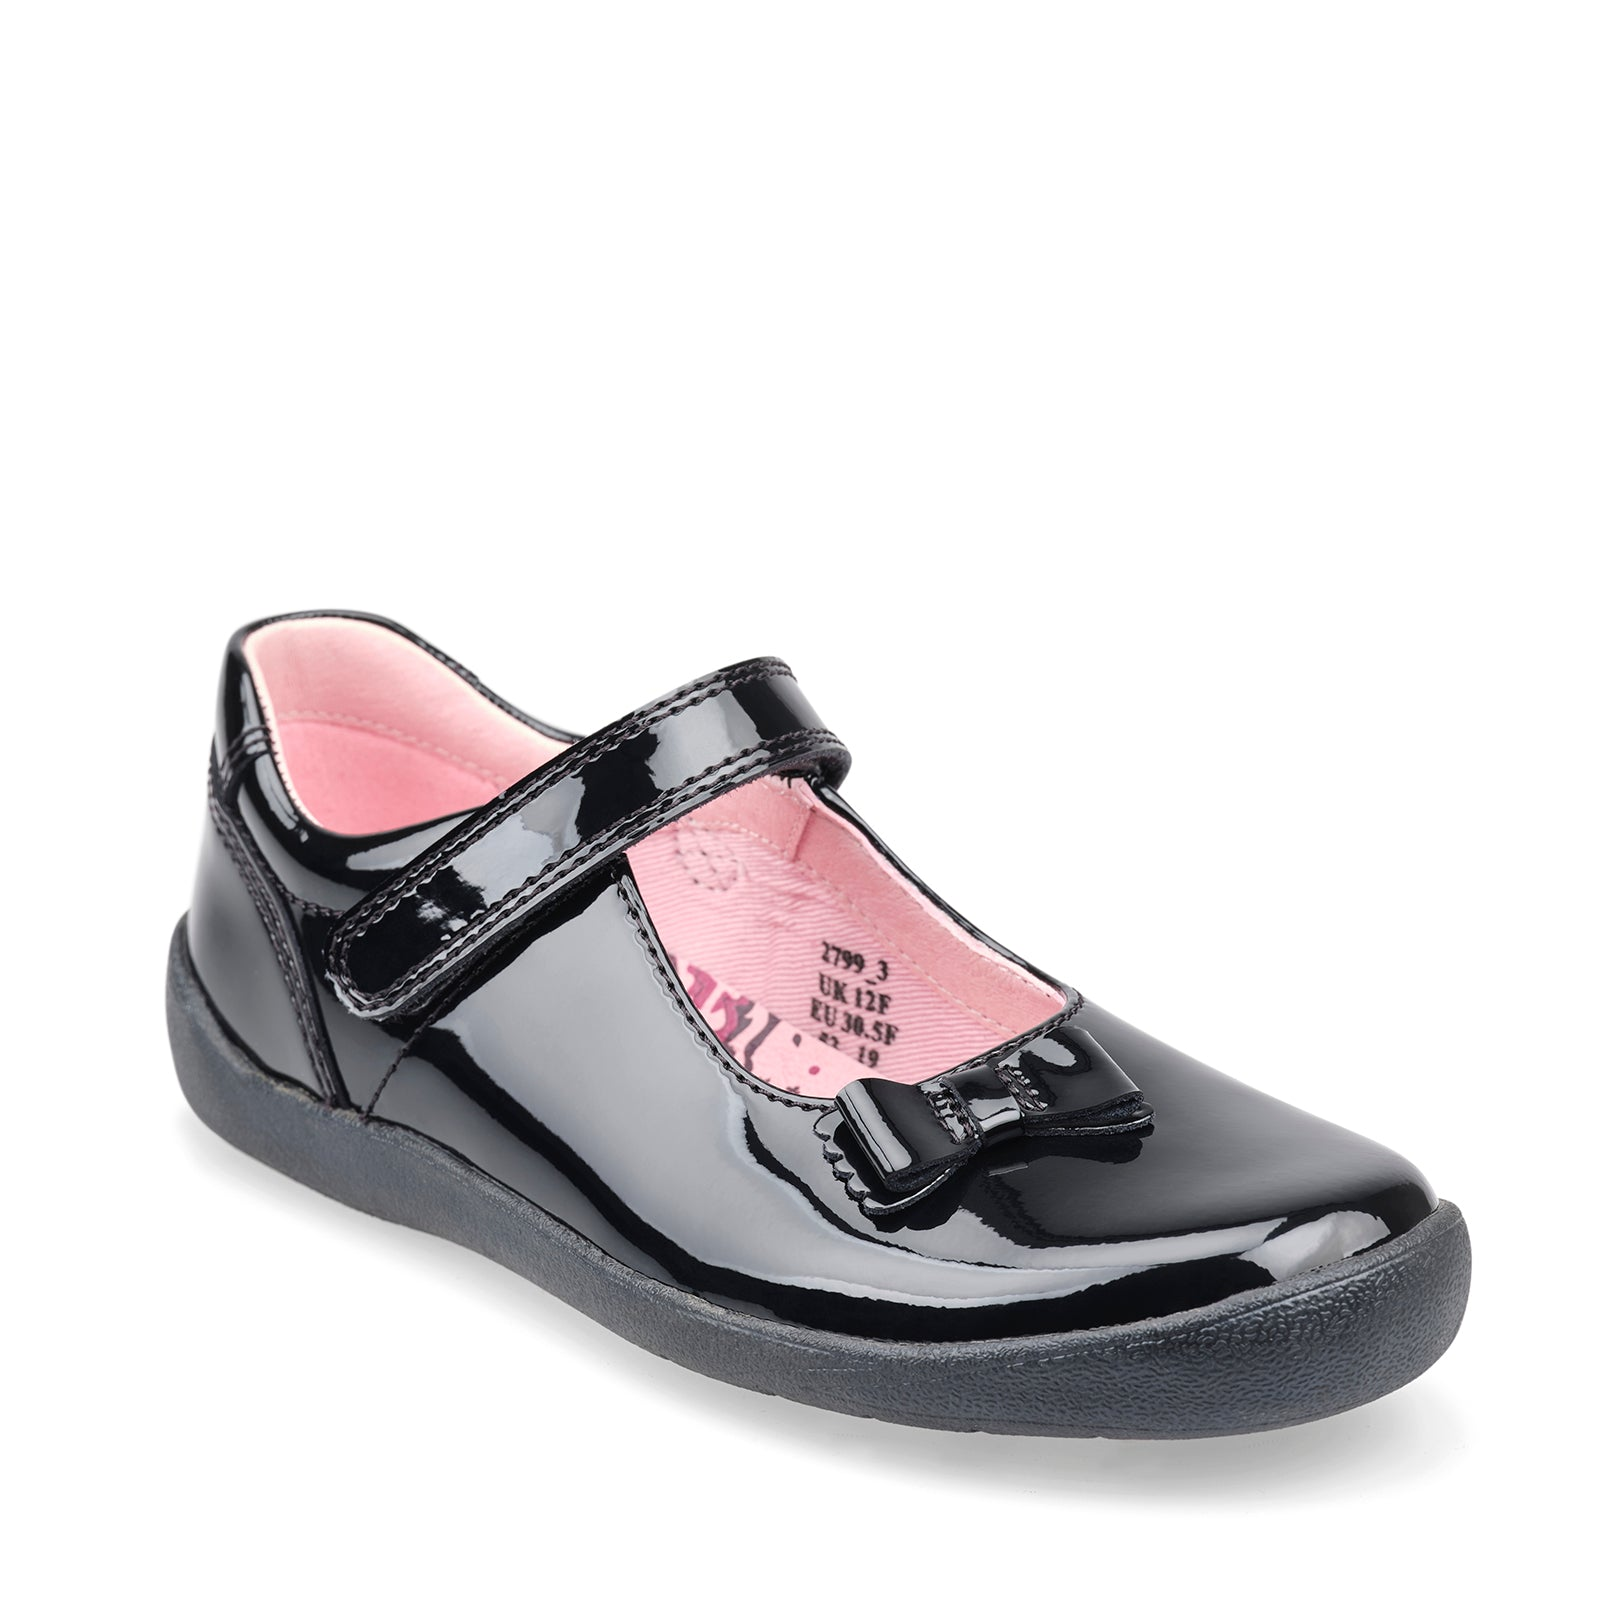 Giggle - Black Patent Leather